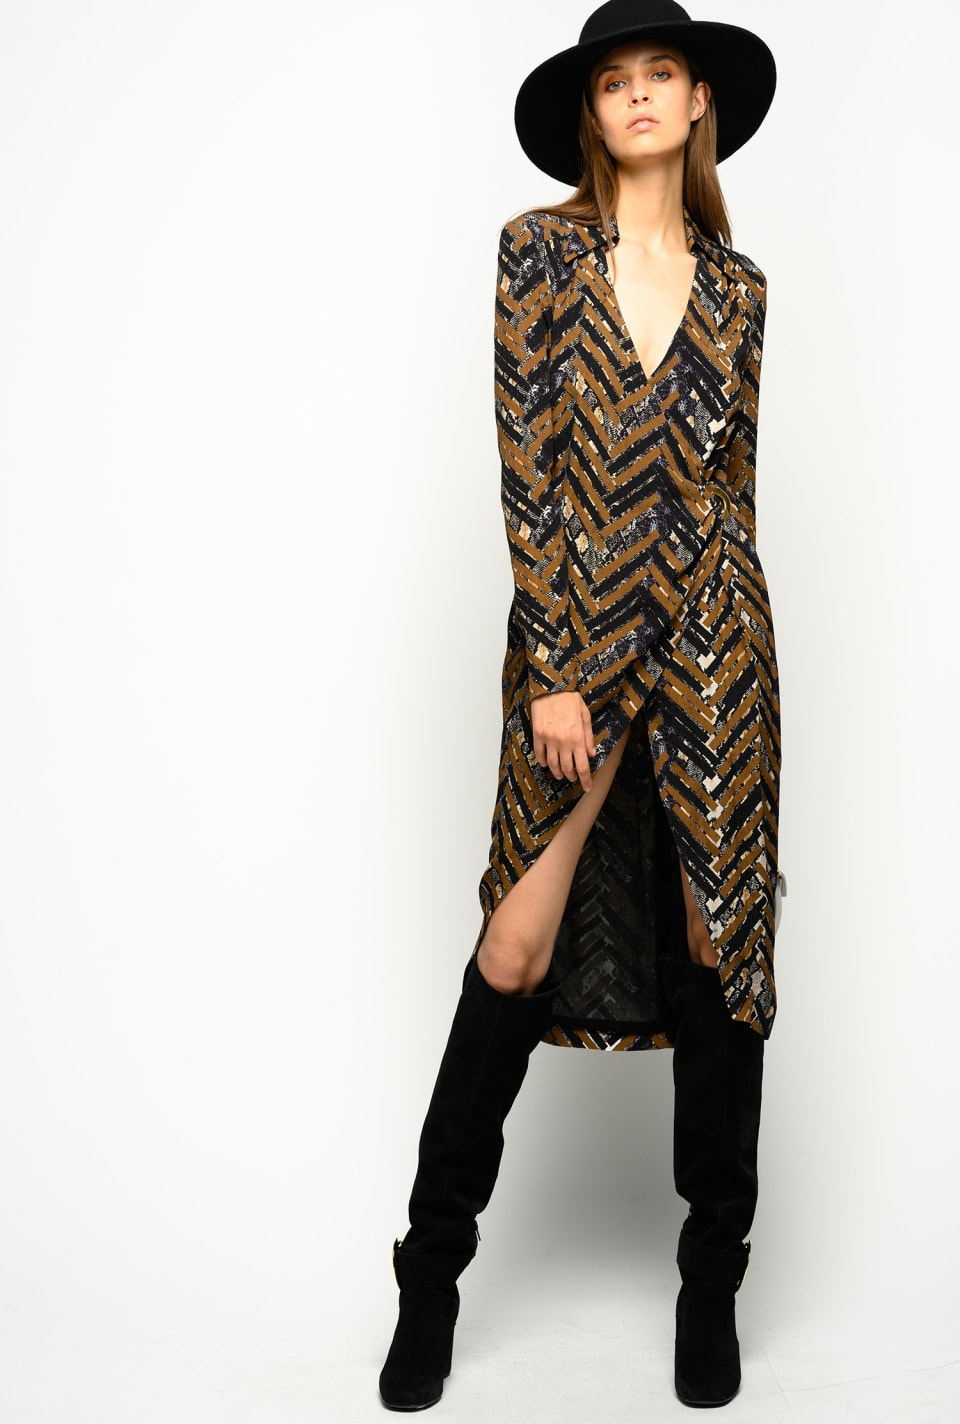 Crossover dress in chevron marocaine and snakeskin print - Pinko